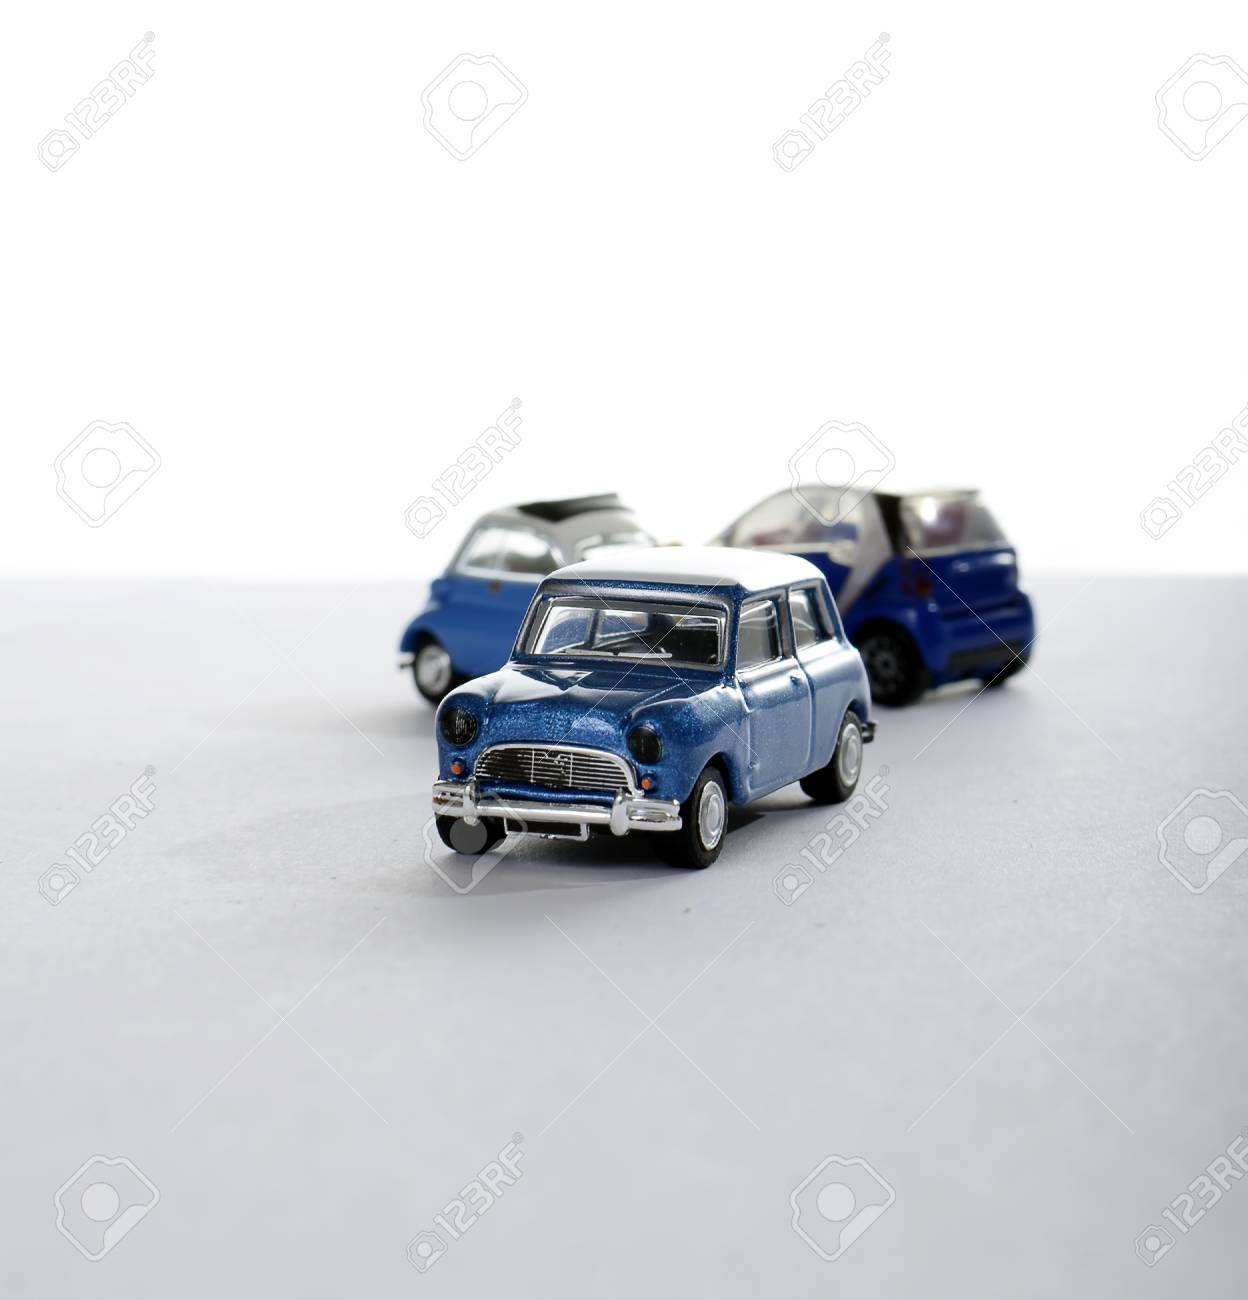 miniature car against other cars, concept Stock Photo - 11170511